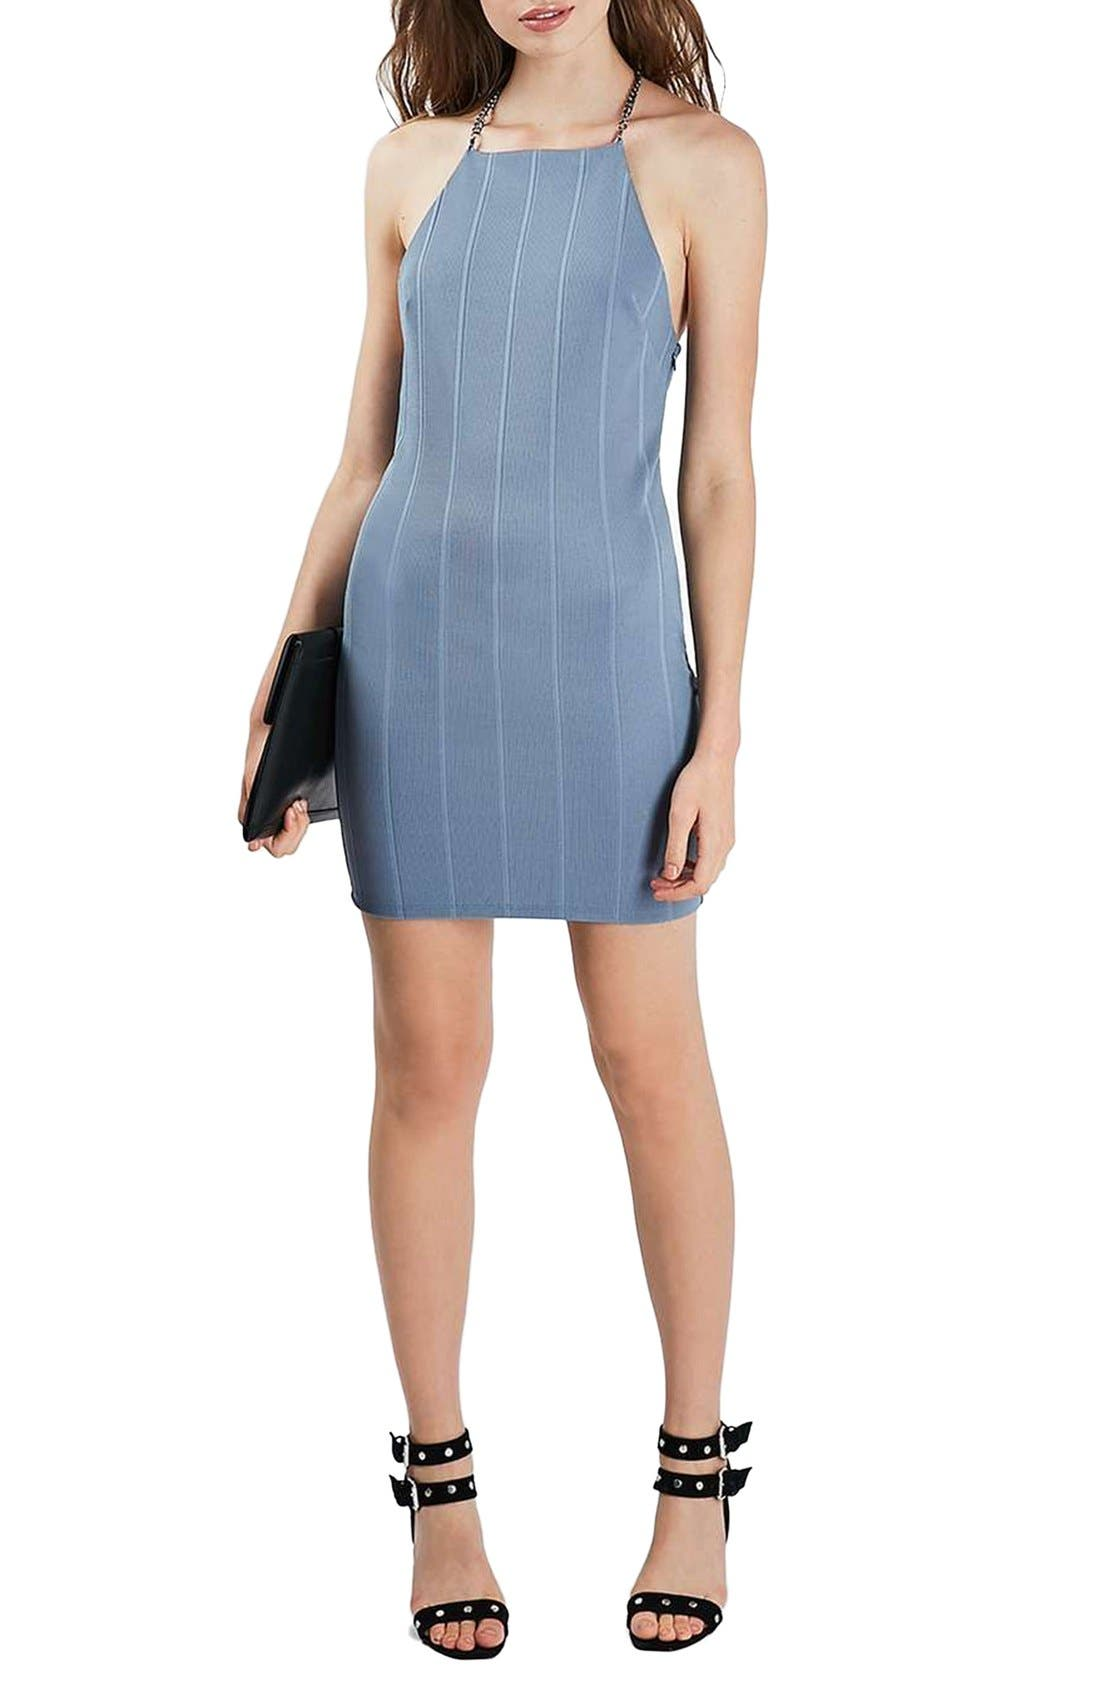 Alternate Image 1 Selected - Topshop Chain Strap Bandage Body-Con Dress